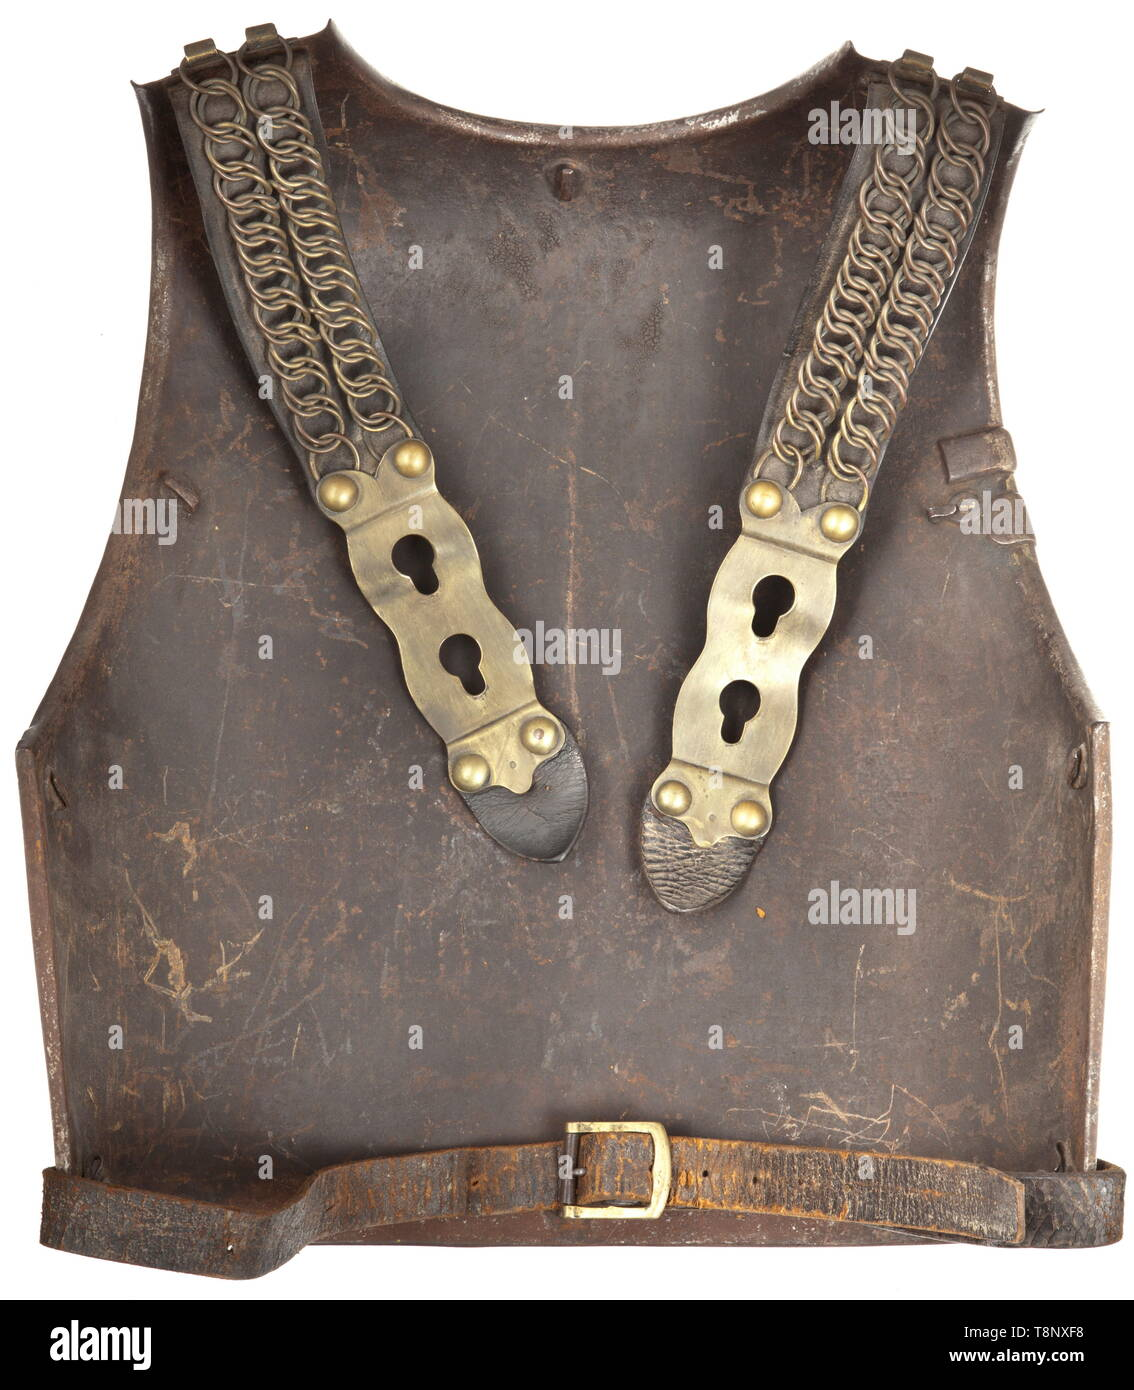 """A cuirass M 1825 for enlisted men of the cuirassiers Heavy sheet iron cuirass with brass rivets and thick leather straps. Breastplate dated """"Klingenthal 1828, No. 1647"""". Without lining. Good original condition. historic, historical, French Restauration, France, French, militaria, object, objects, stills, clipping, cut out, cut-out, cut-outs, 19th century, Additional-Rights-Clearance-Info-Not-Available Stock Photo"""